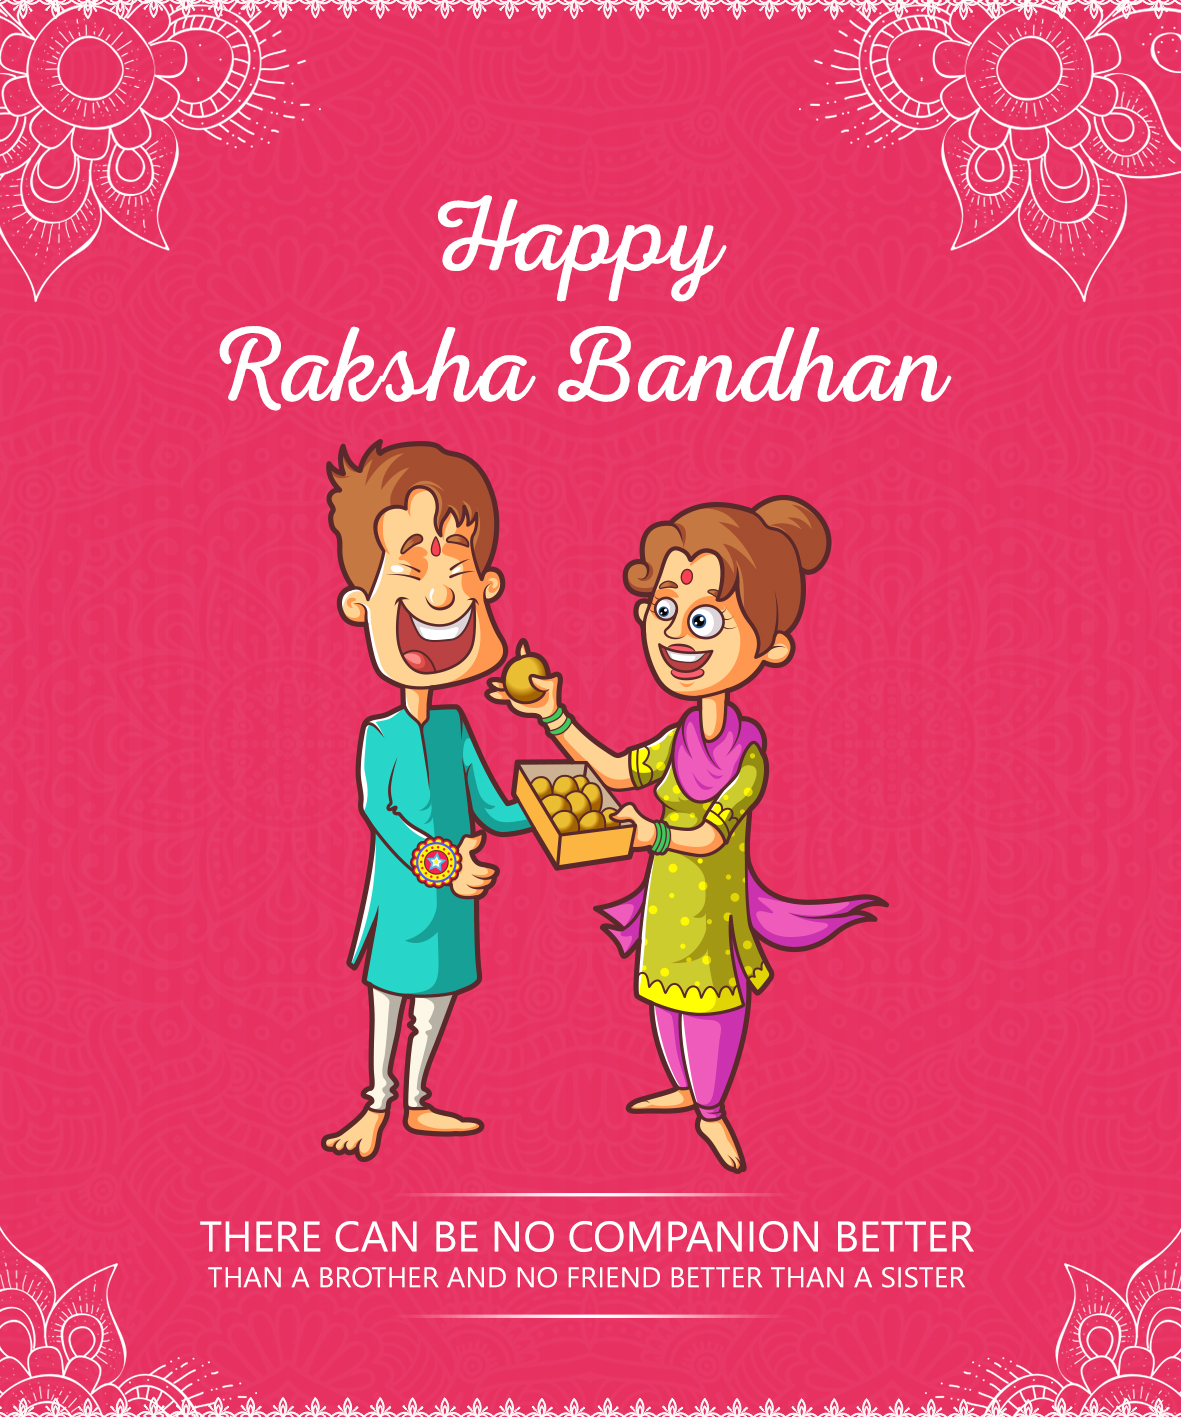 Announcing Winners For Egreetings Design Contest For Raksha Bandhan  Second Prize Nisha